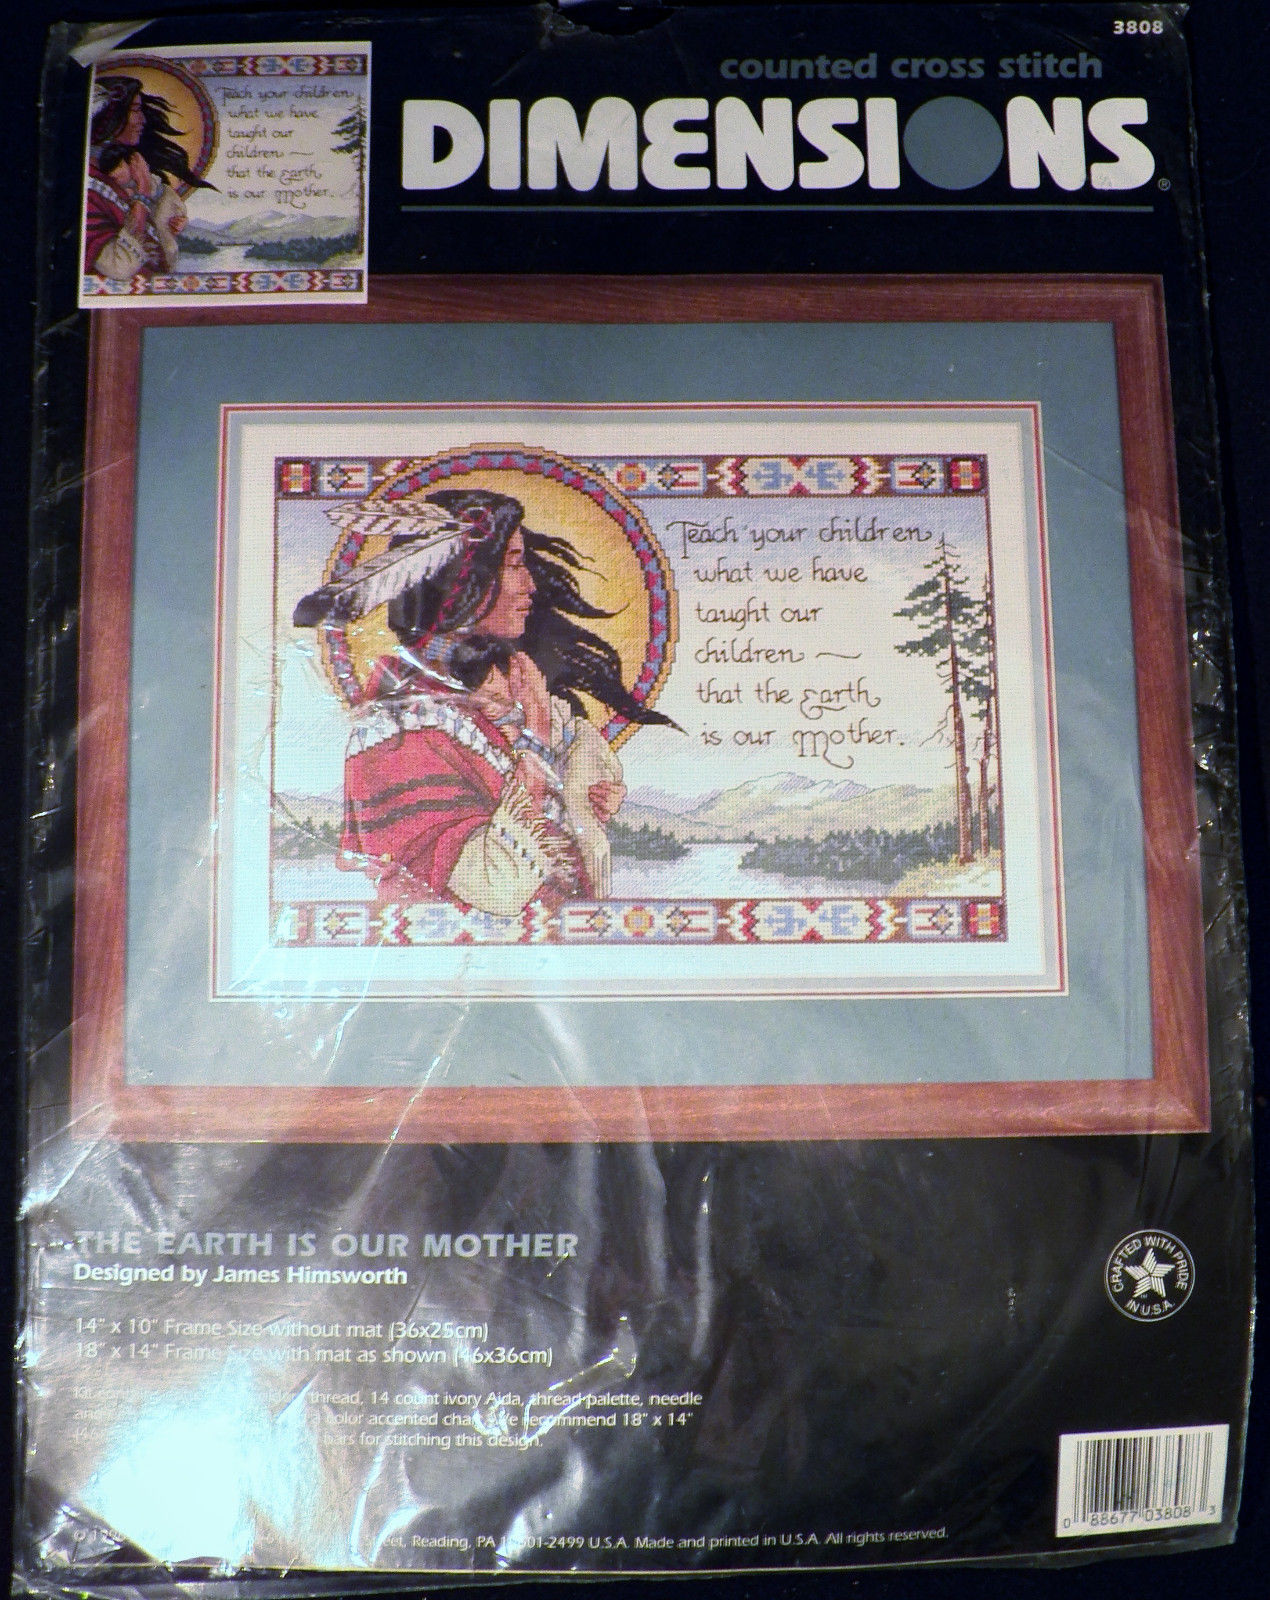 Dimensions James Himsworth 3808 The Earth is Our Mother Counted Cross Stitch Kit